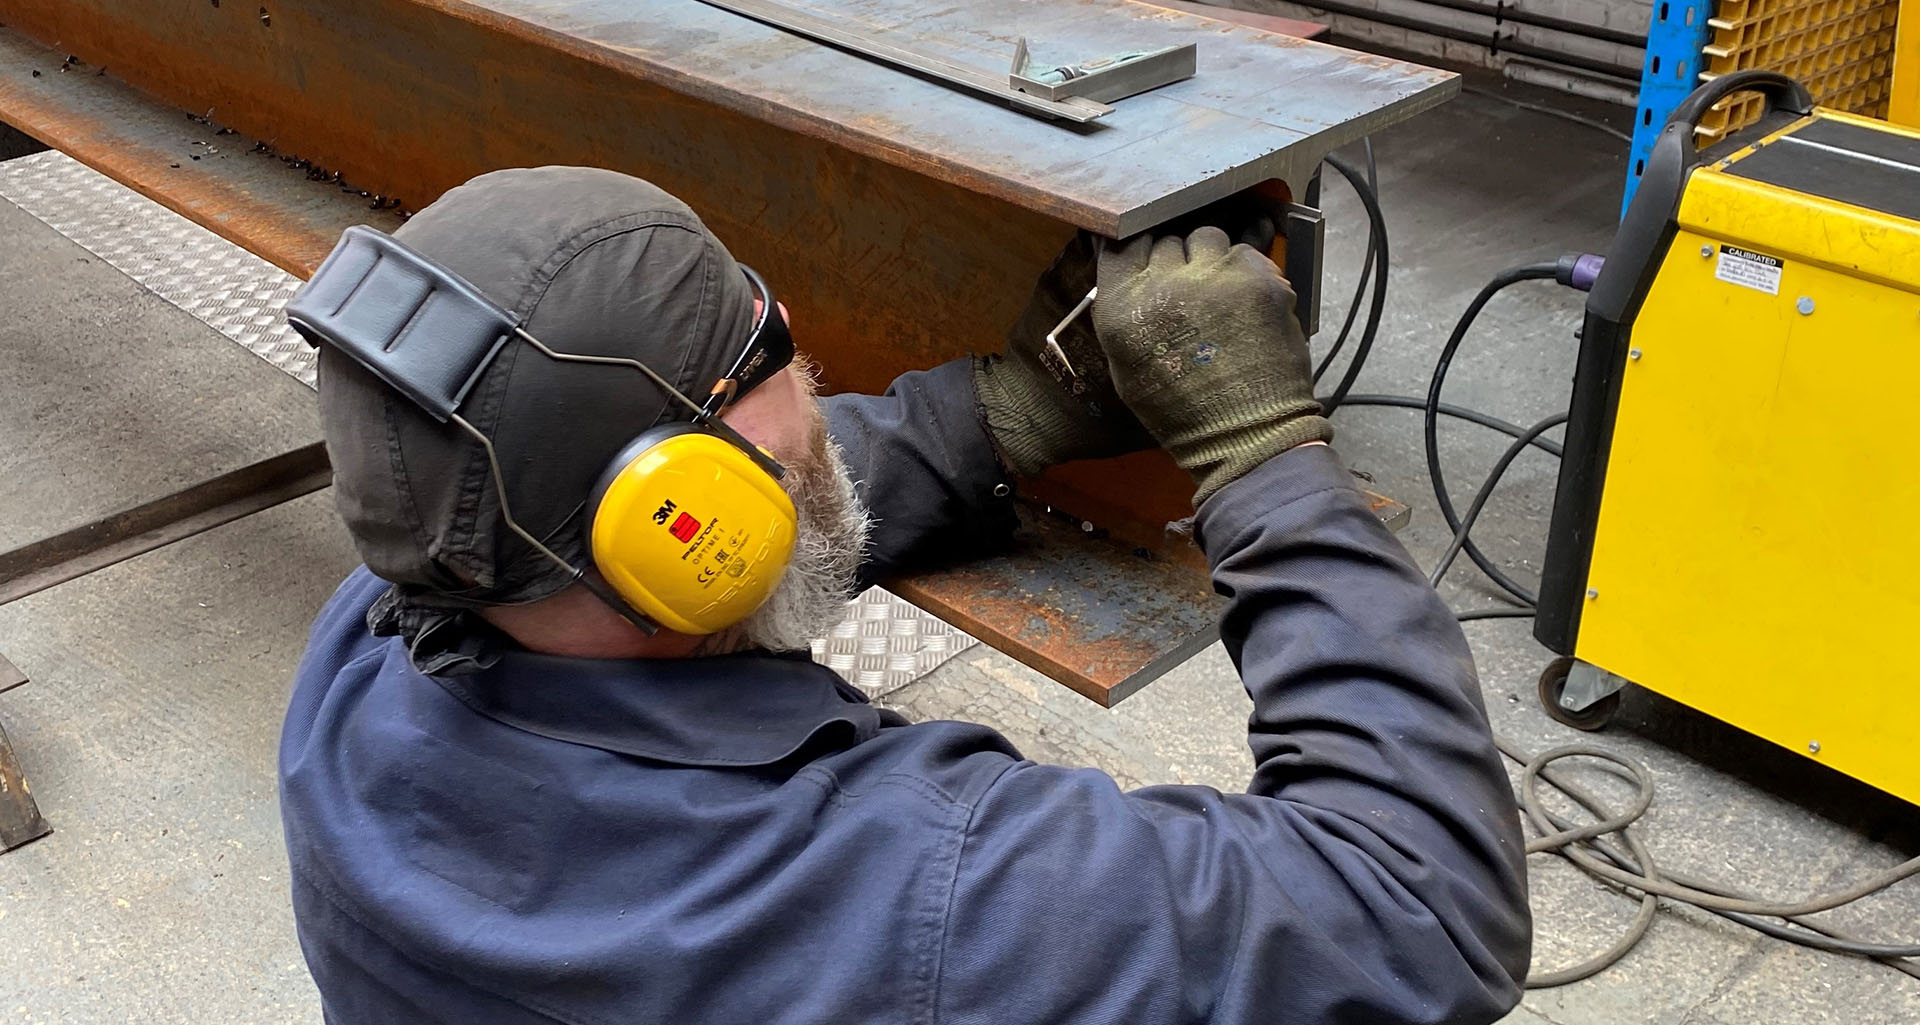 What's involved in welding inspections for EN 1090? 2 - Alroys